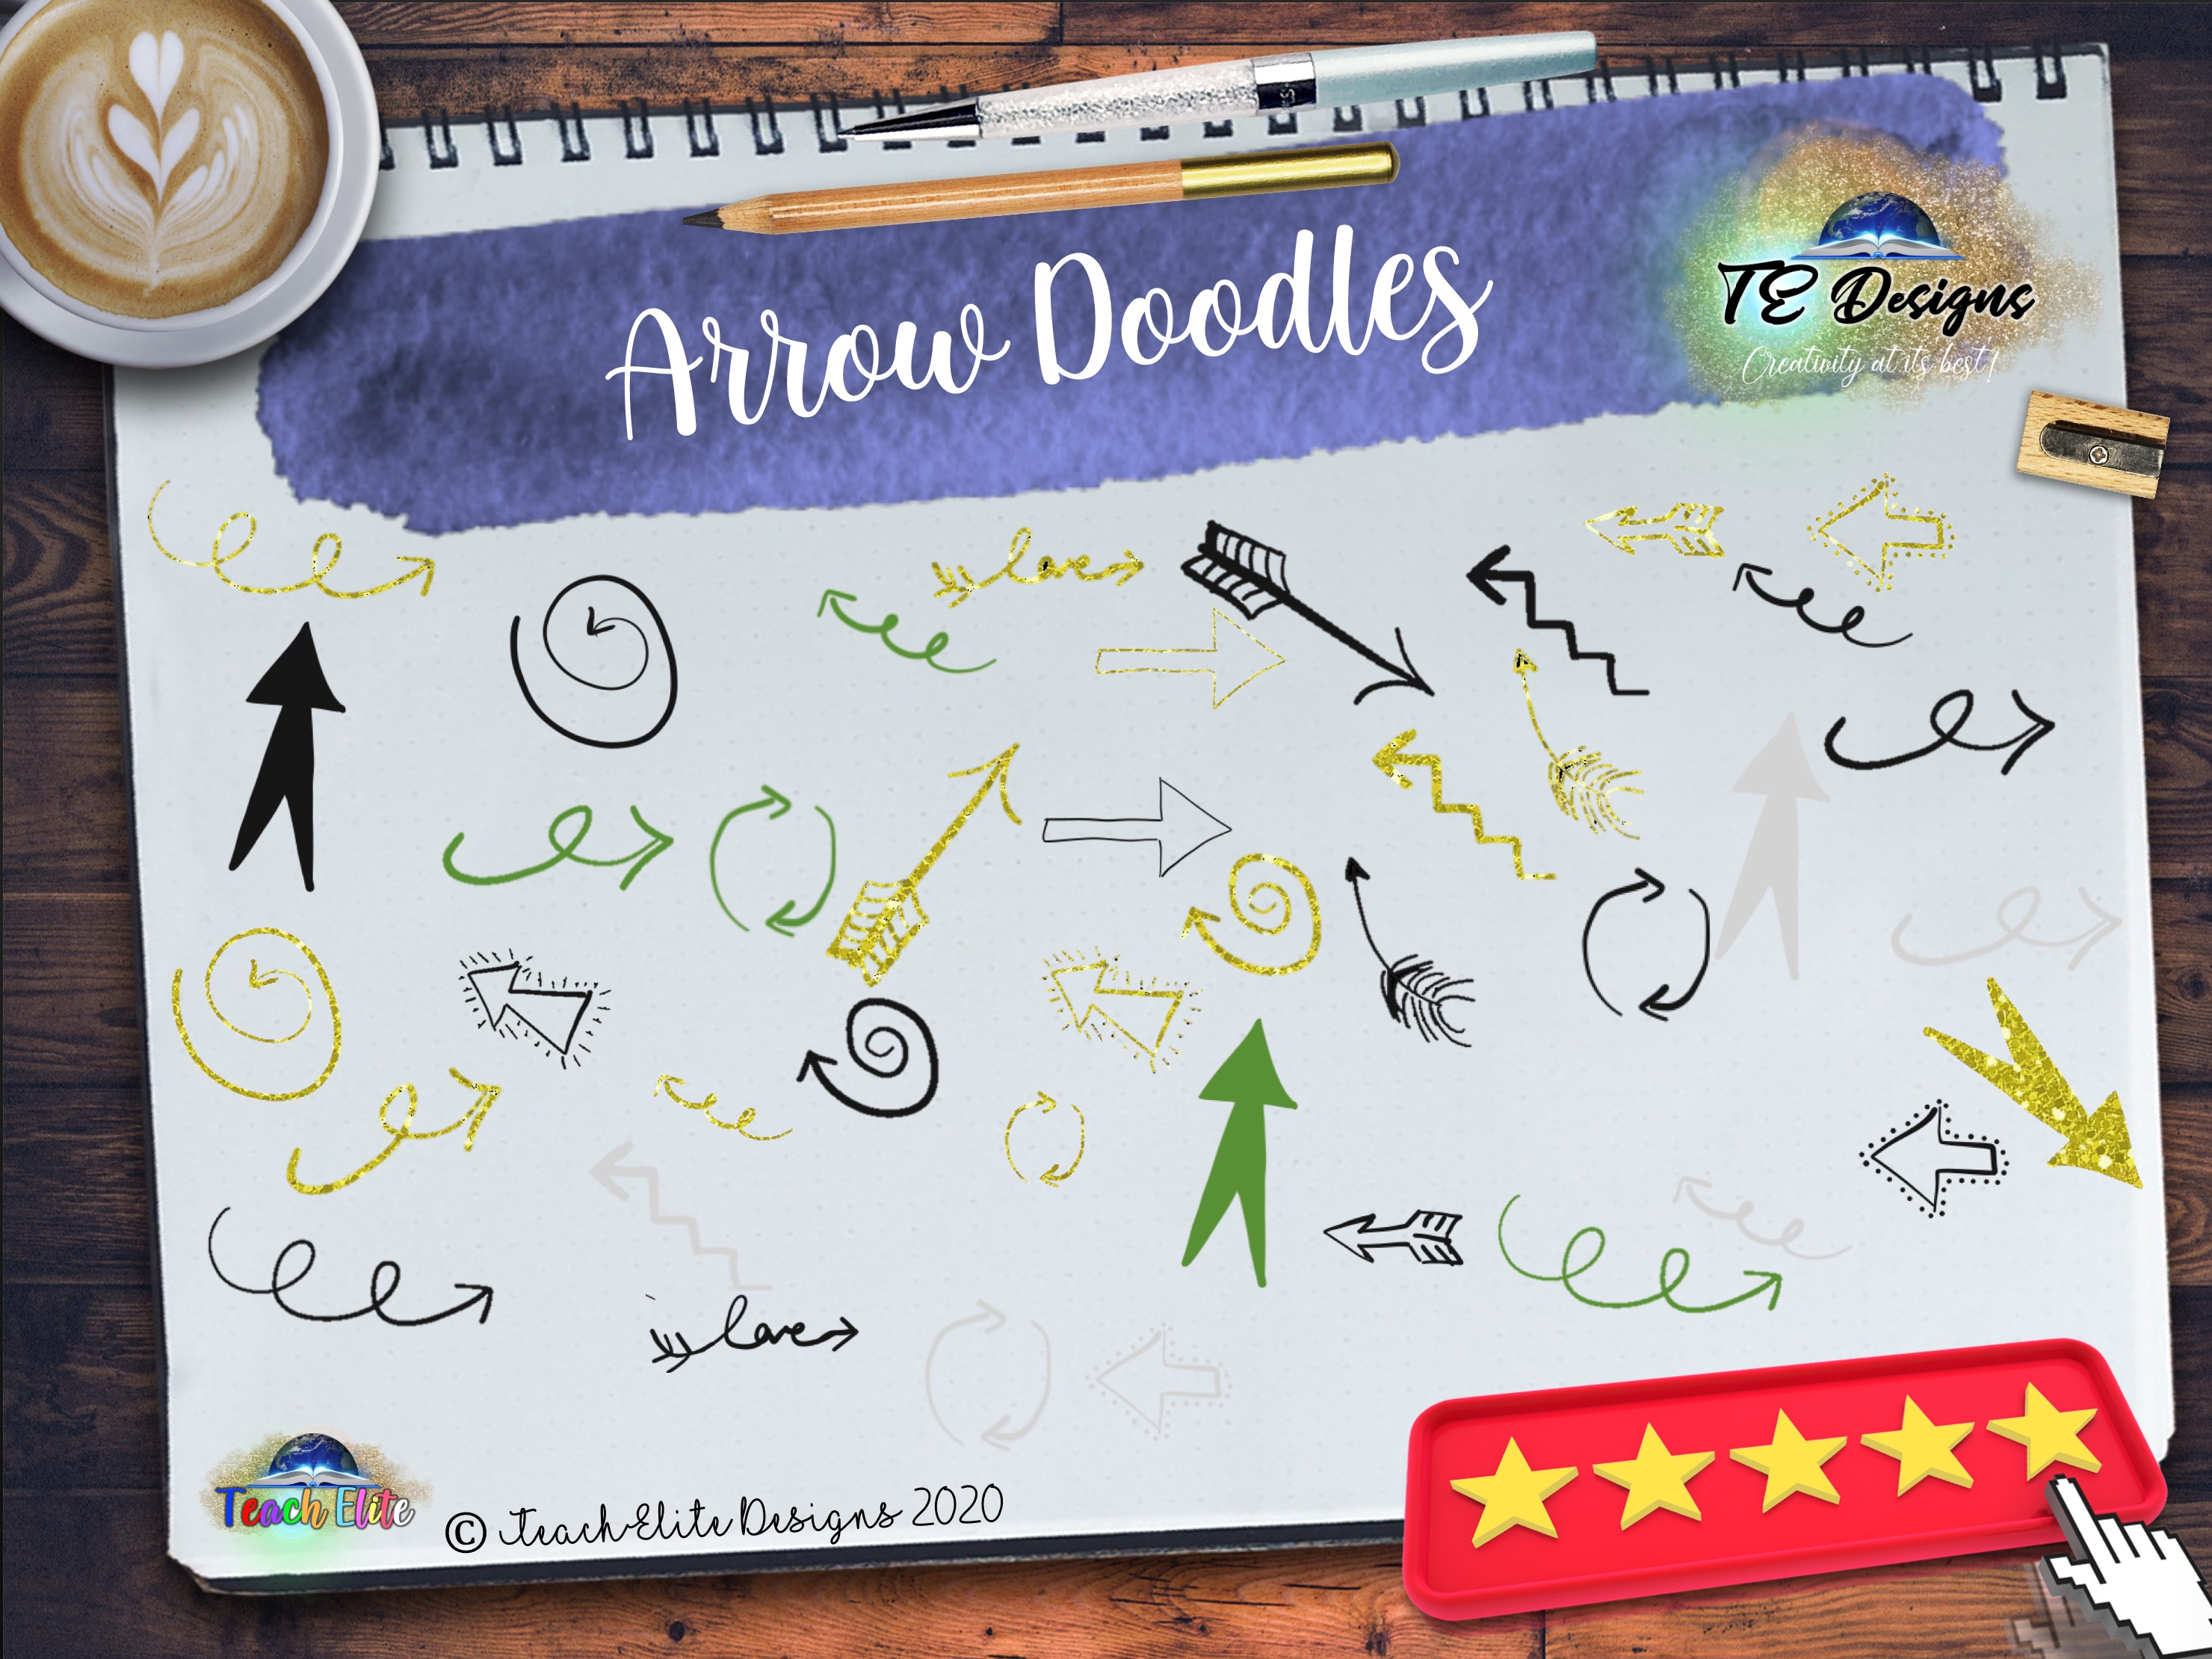 Download Free Arrow Doodles Graphic By Te Designs Creative Fabrica for Cricut Explore, Silhouette and other cutting machines.